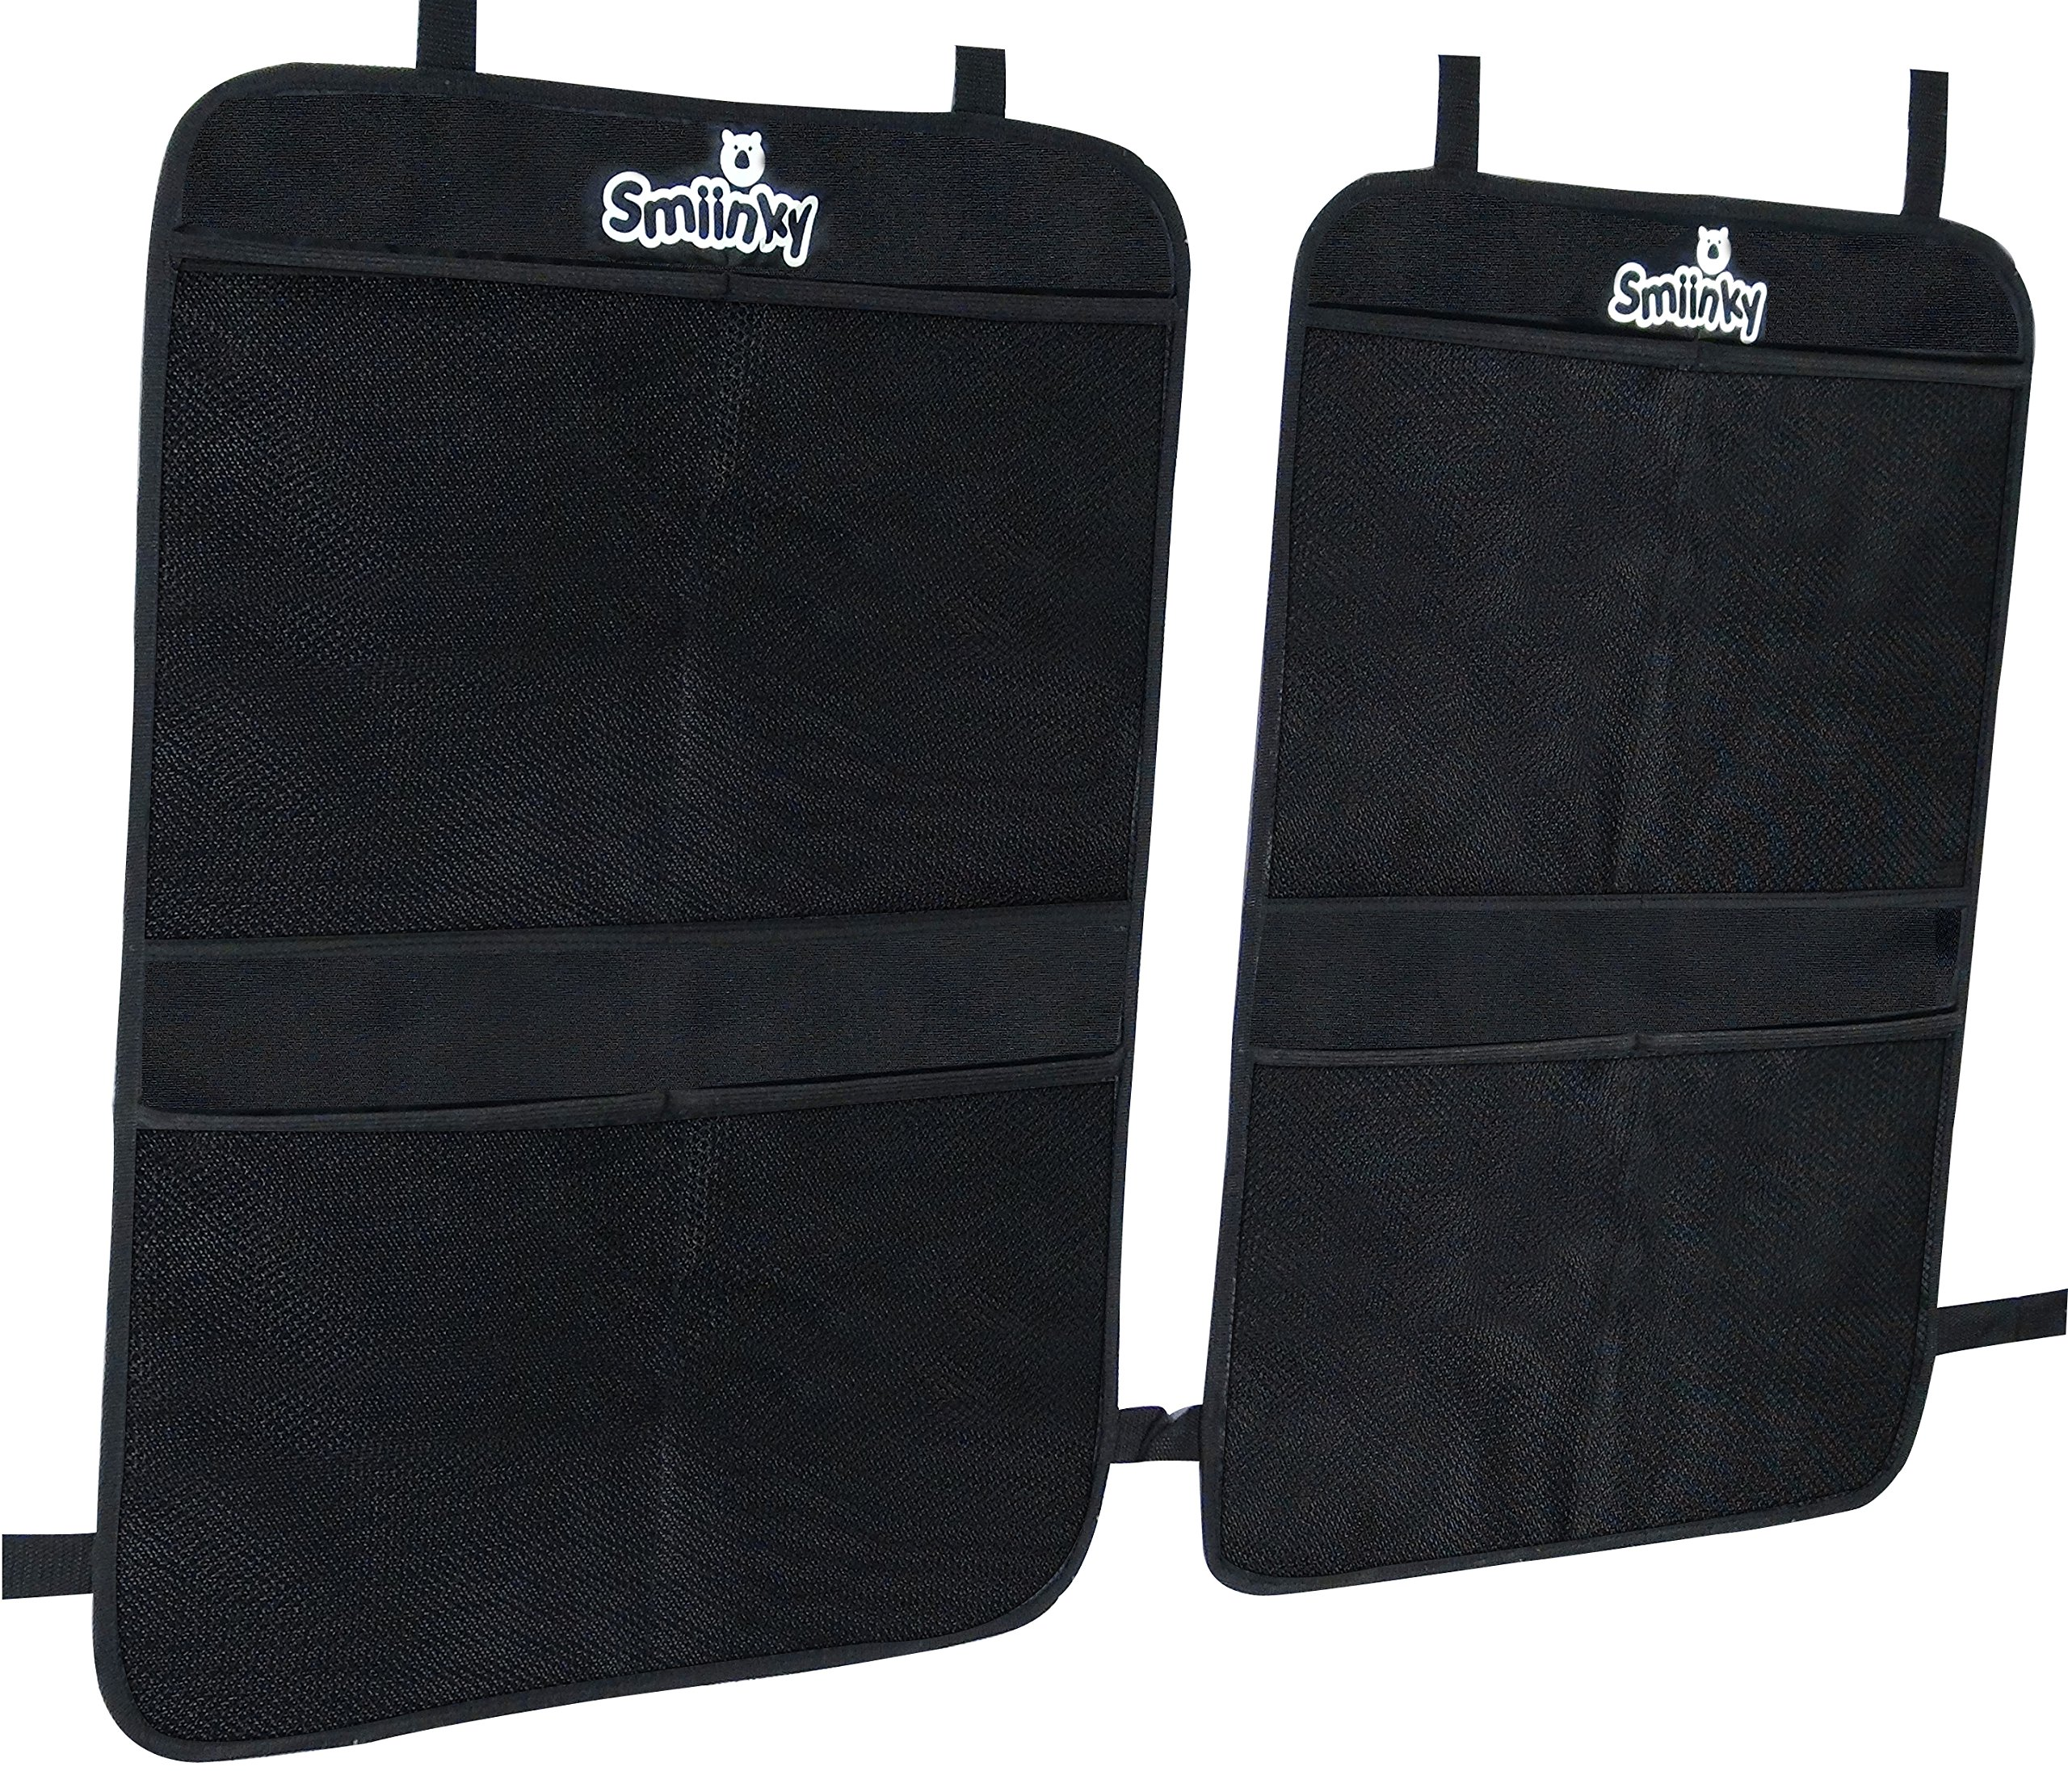 Cheap Bostrom Truck Seats, find Bostrom Truck Seats deals on line at